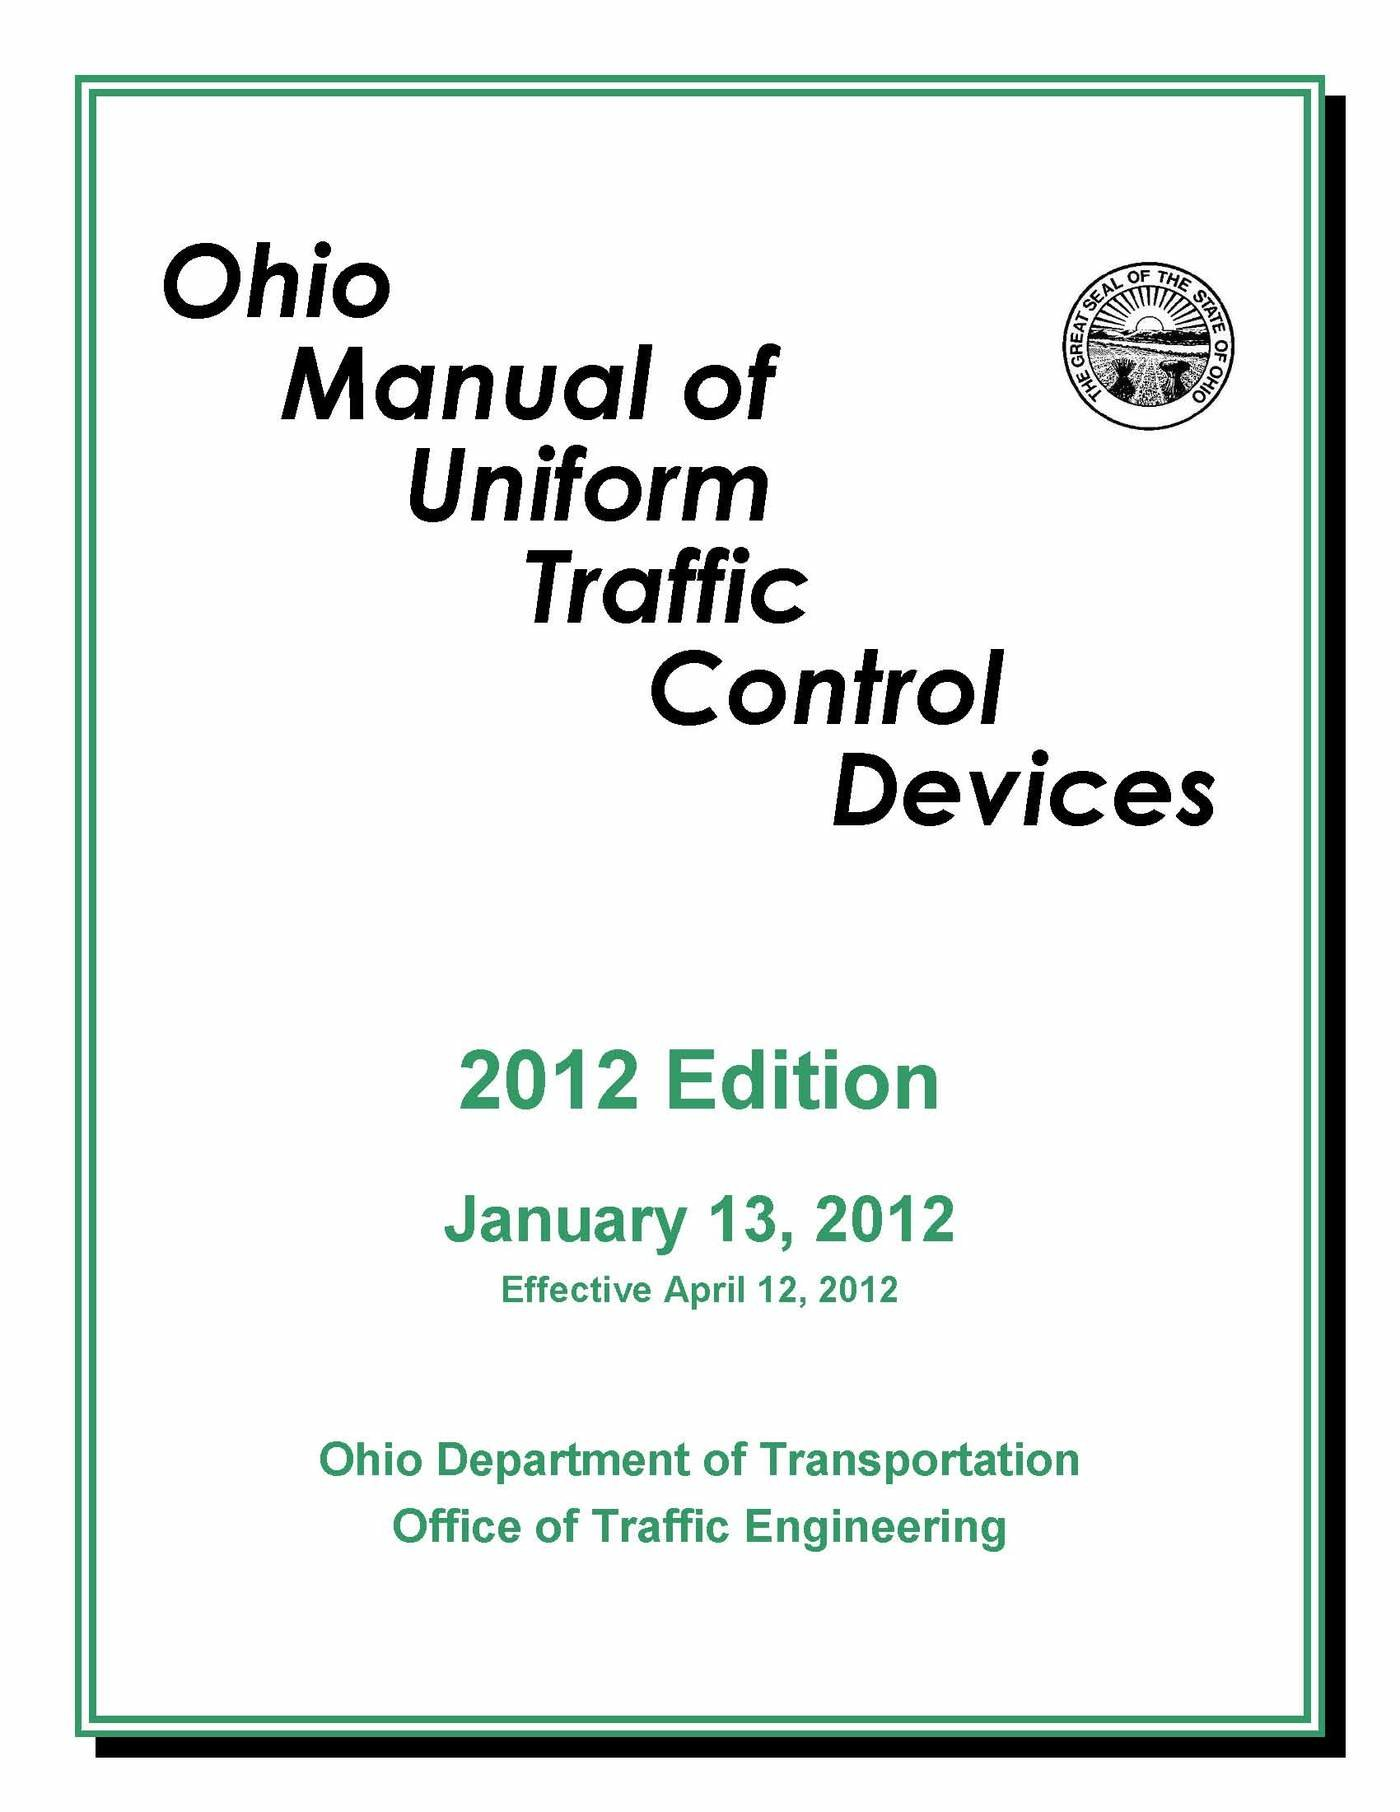 Ohio Manual of Uniform Traffic Control Devices by Matthew Hawk at  Coroflot.com